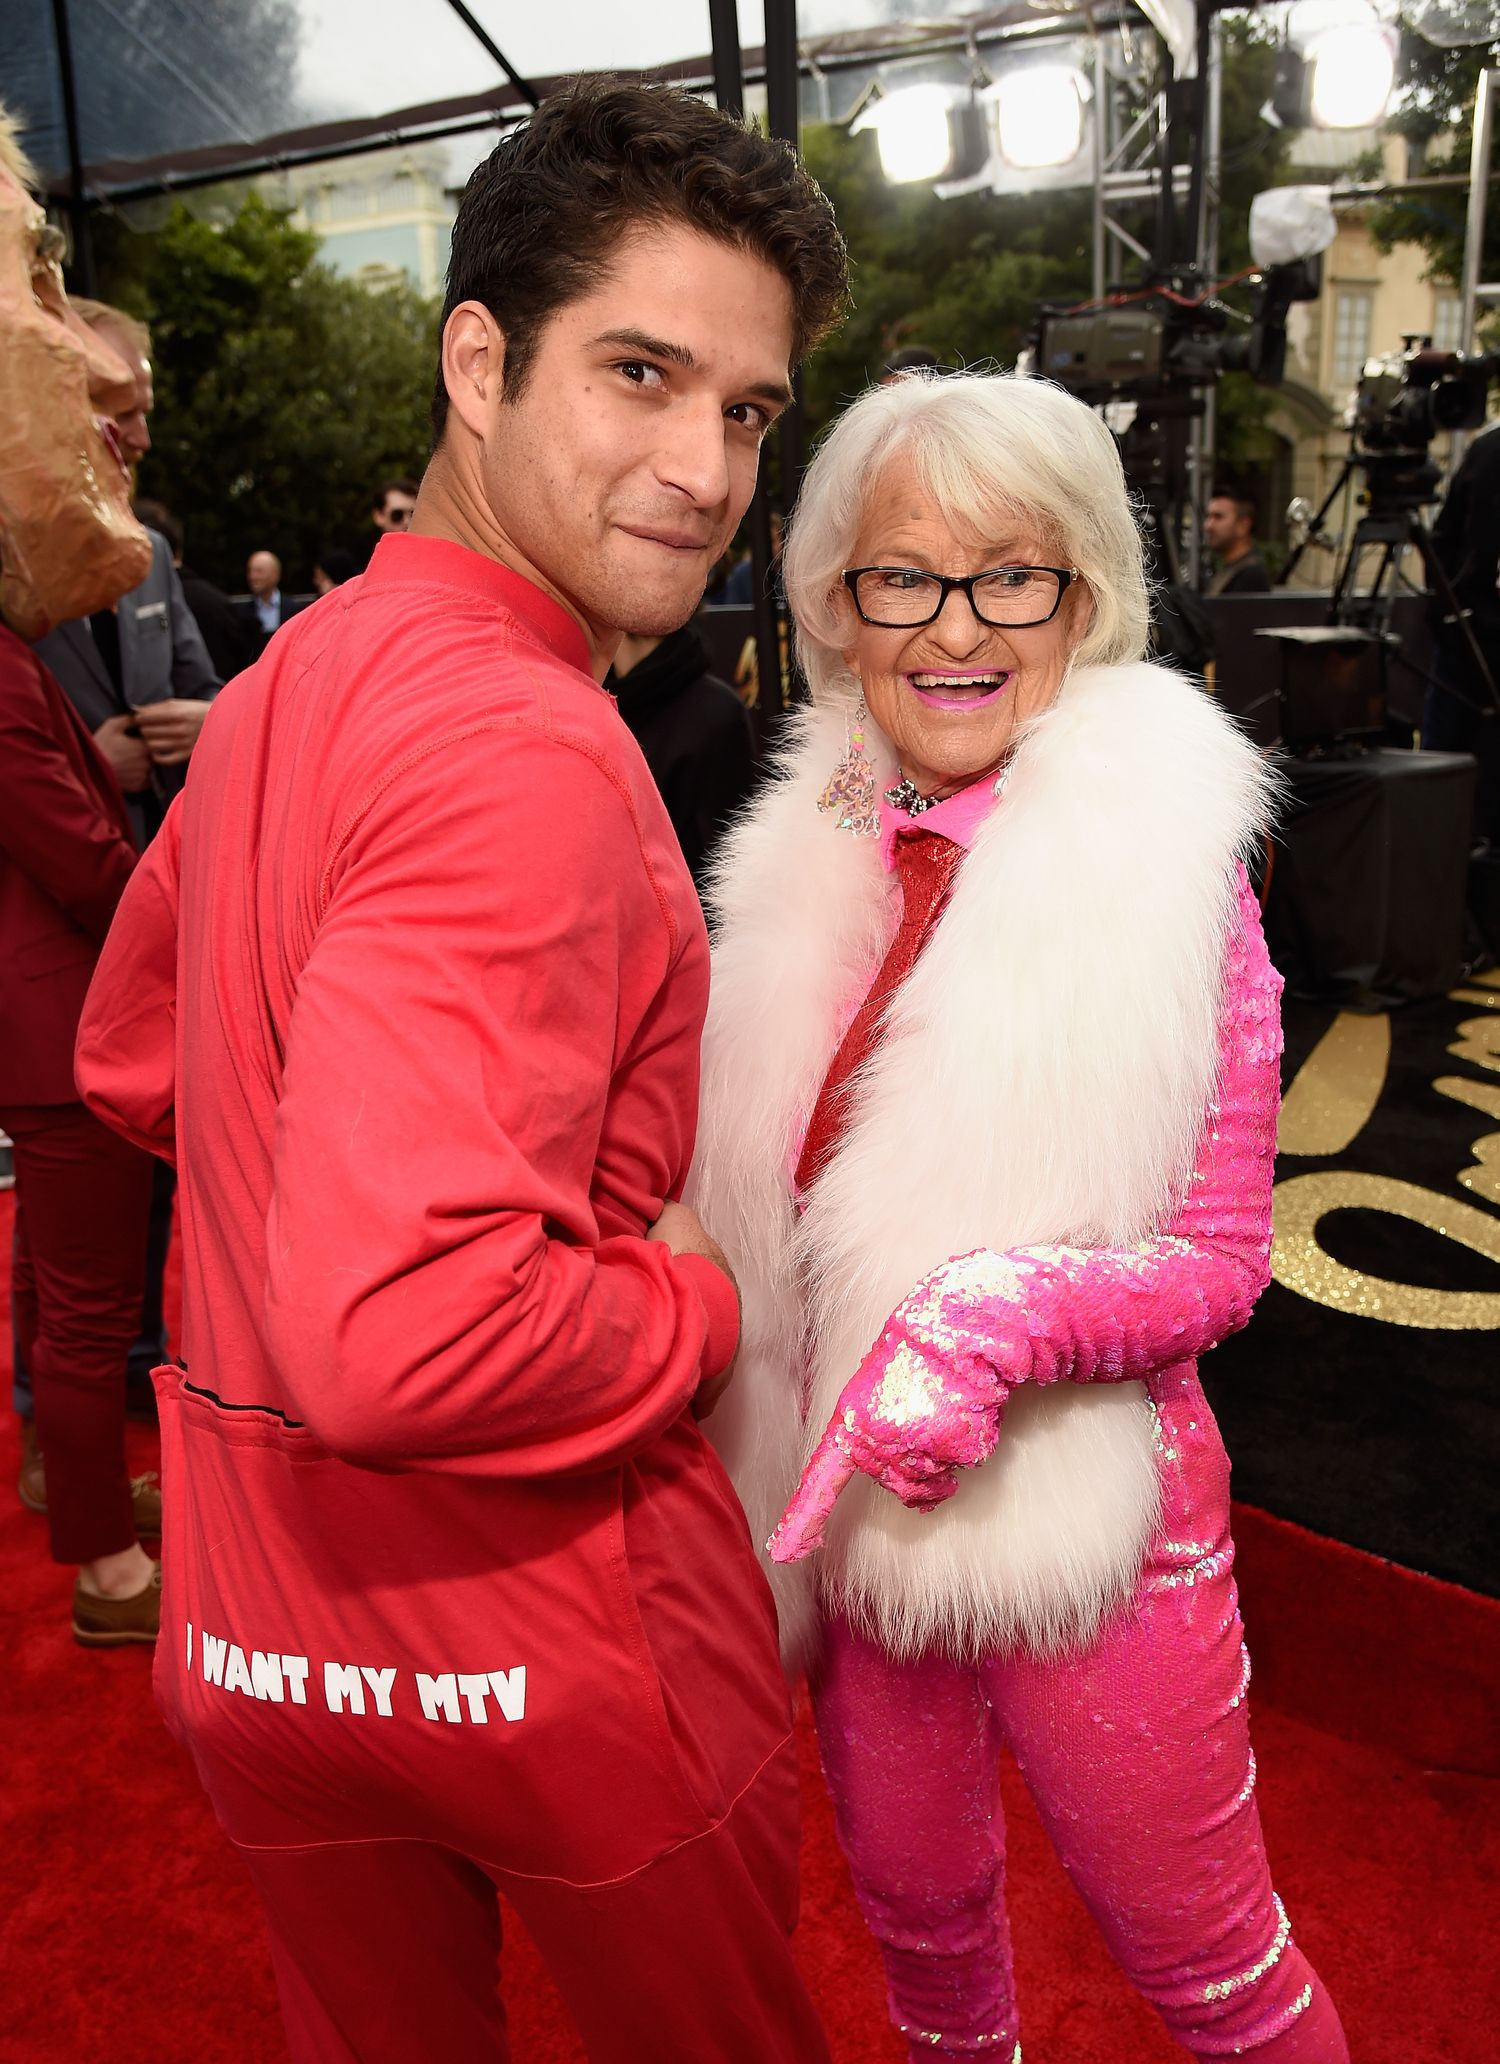 BURBANK, CALIFORNIA - APRIL 09: Actor Tyler Posey (L) and internet personality Baddie Winkle attend the 2016 MTV Movie Awards at Warner Bros. Studios on April 9, 2016 in Burbank, California. MTV Movie Awards airs April 10, 2016 at 8pm ET/PT. (Photo by Kevin Mazur/WireImage for MTV)